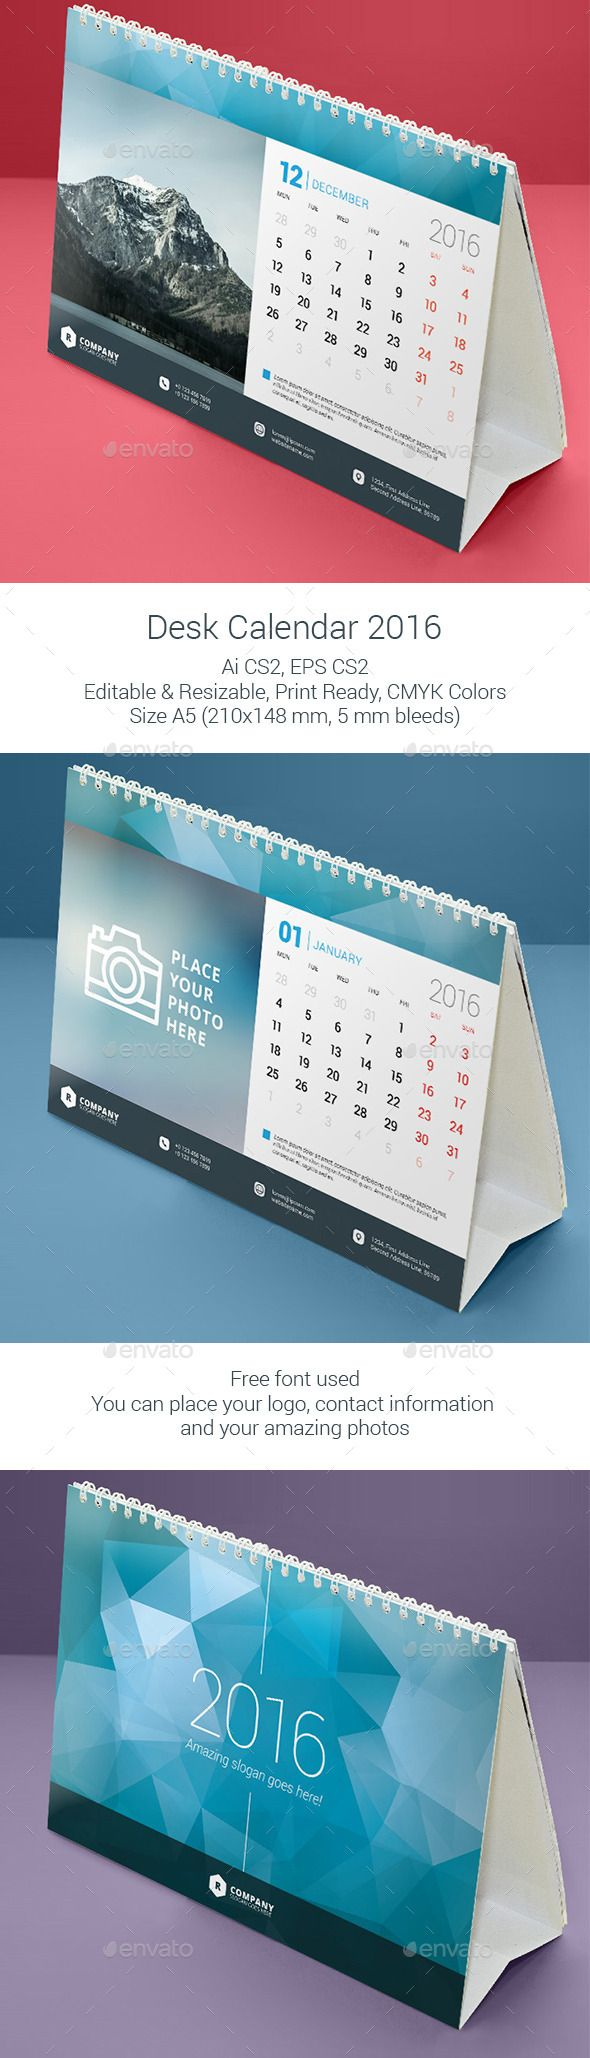 283 best Calendar images on Pinterest | Calendar, Calendar design ...